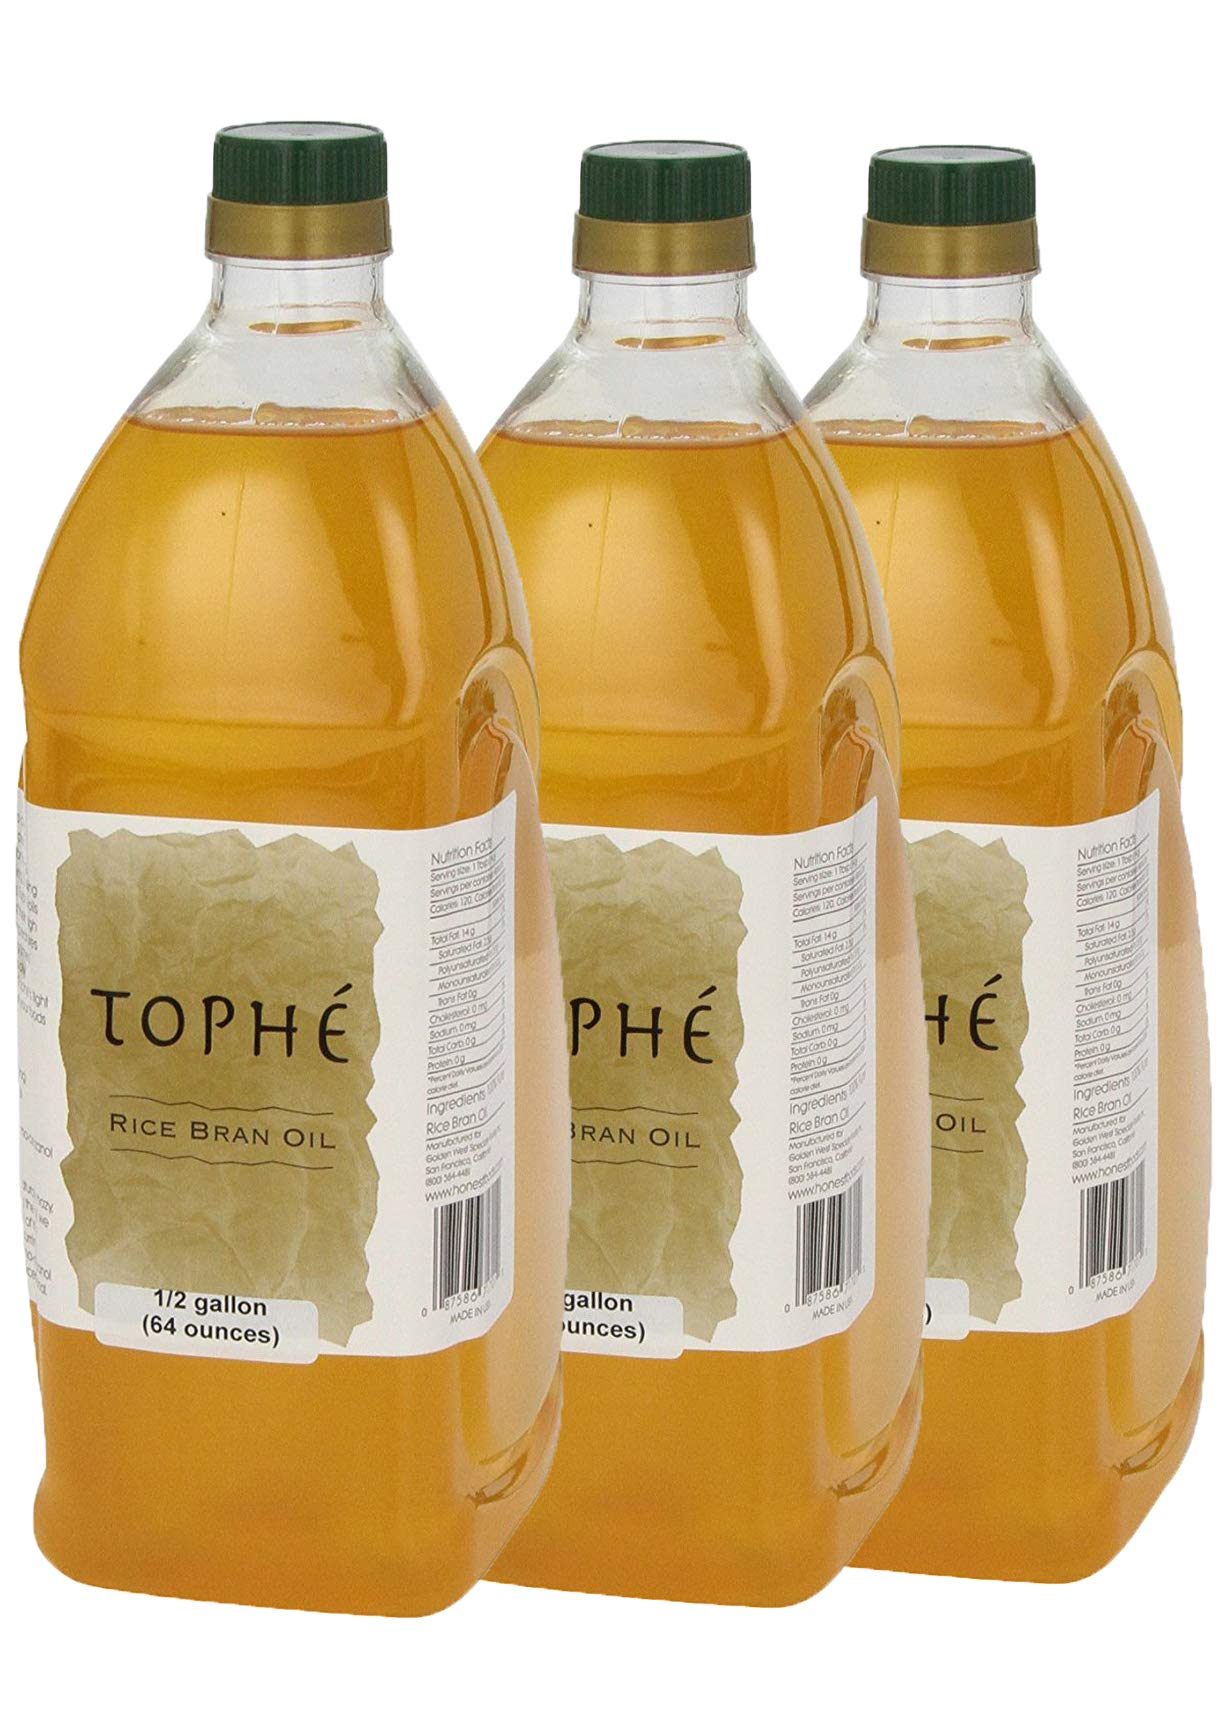 RICE BRAN OIL | All Natural, Made from 100% Non-GMO Rice | Rich in Vitamin E and Gamma-Oryzanol | Unfiltered, Non Winterized, No Trans Fat and Heart Healthy | 3-Pack 1/2 Gallon By Tophé by Tophé